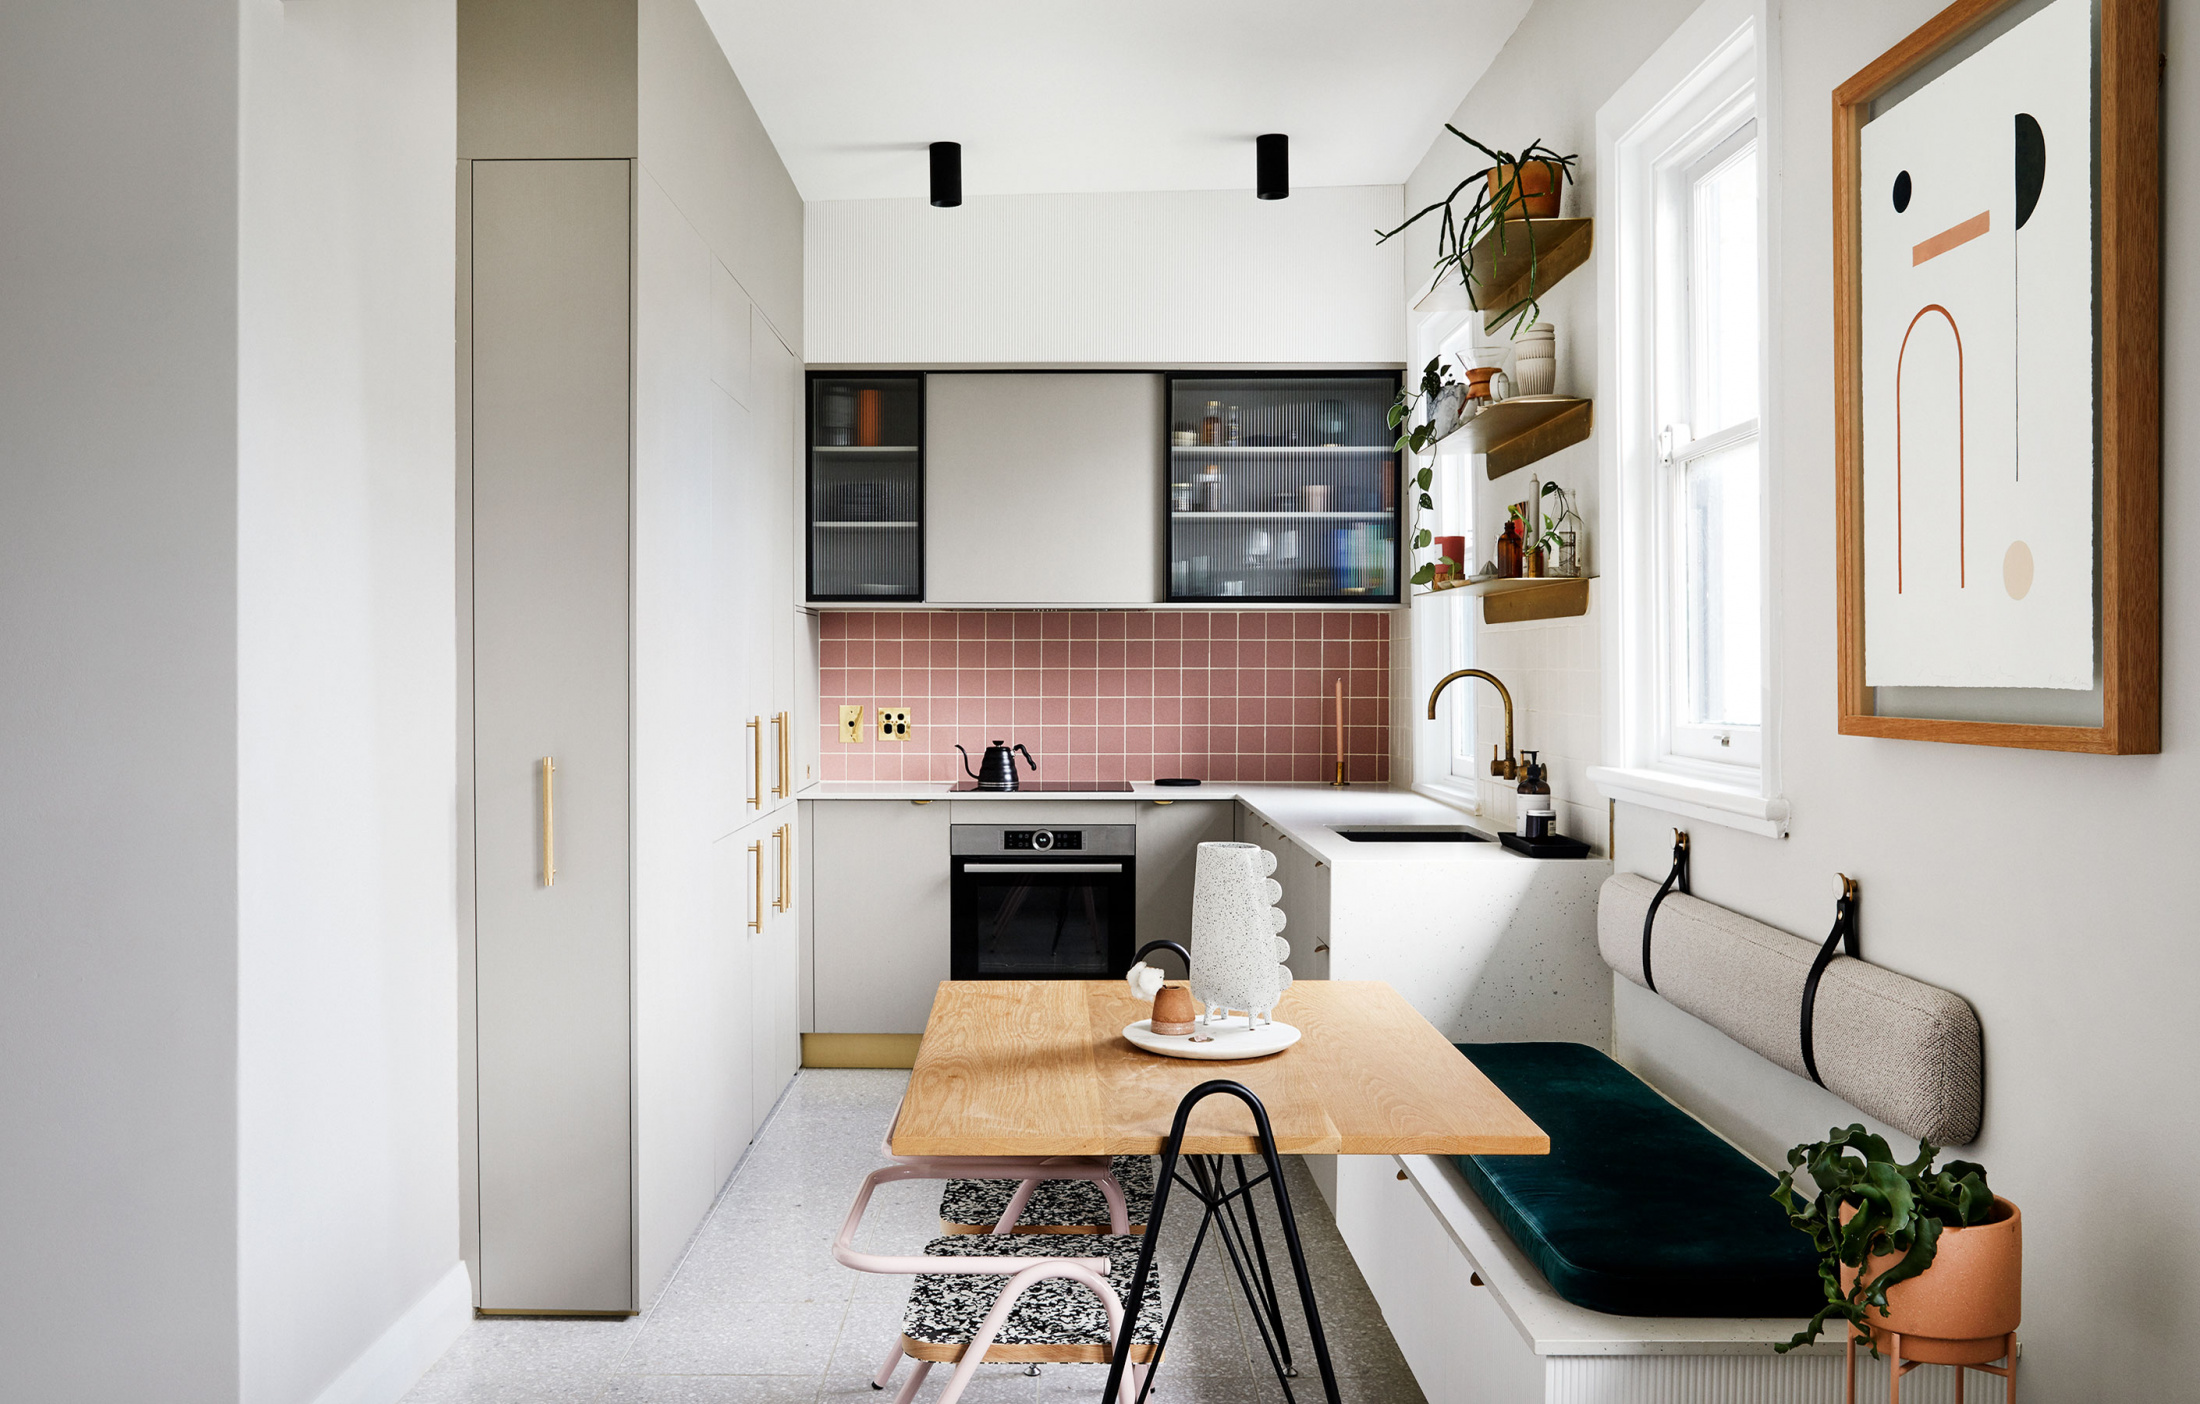 4 Low Cost Big Ideas For Small Spaces